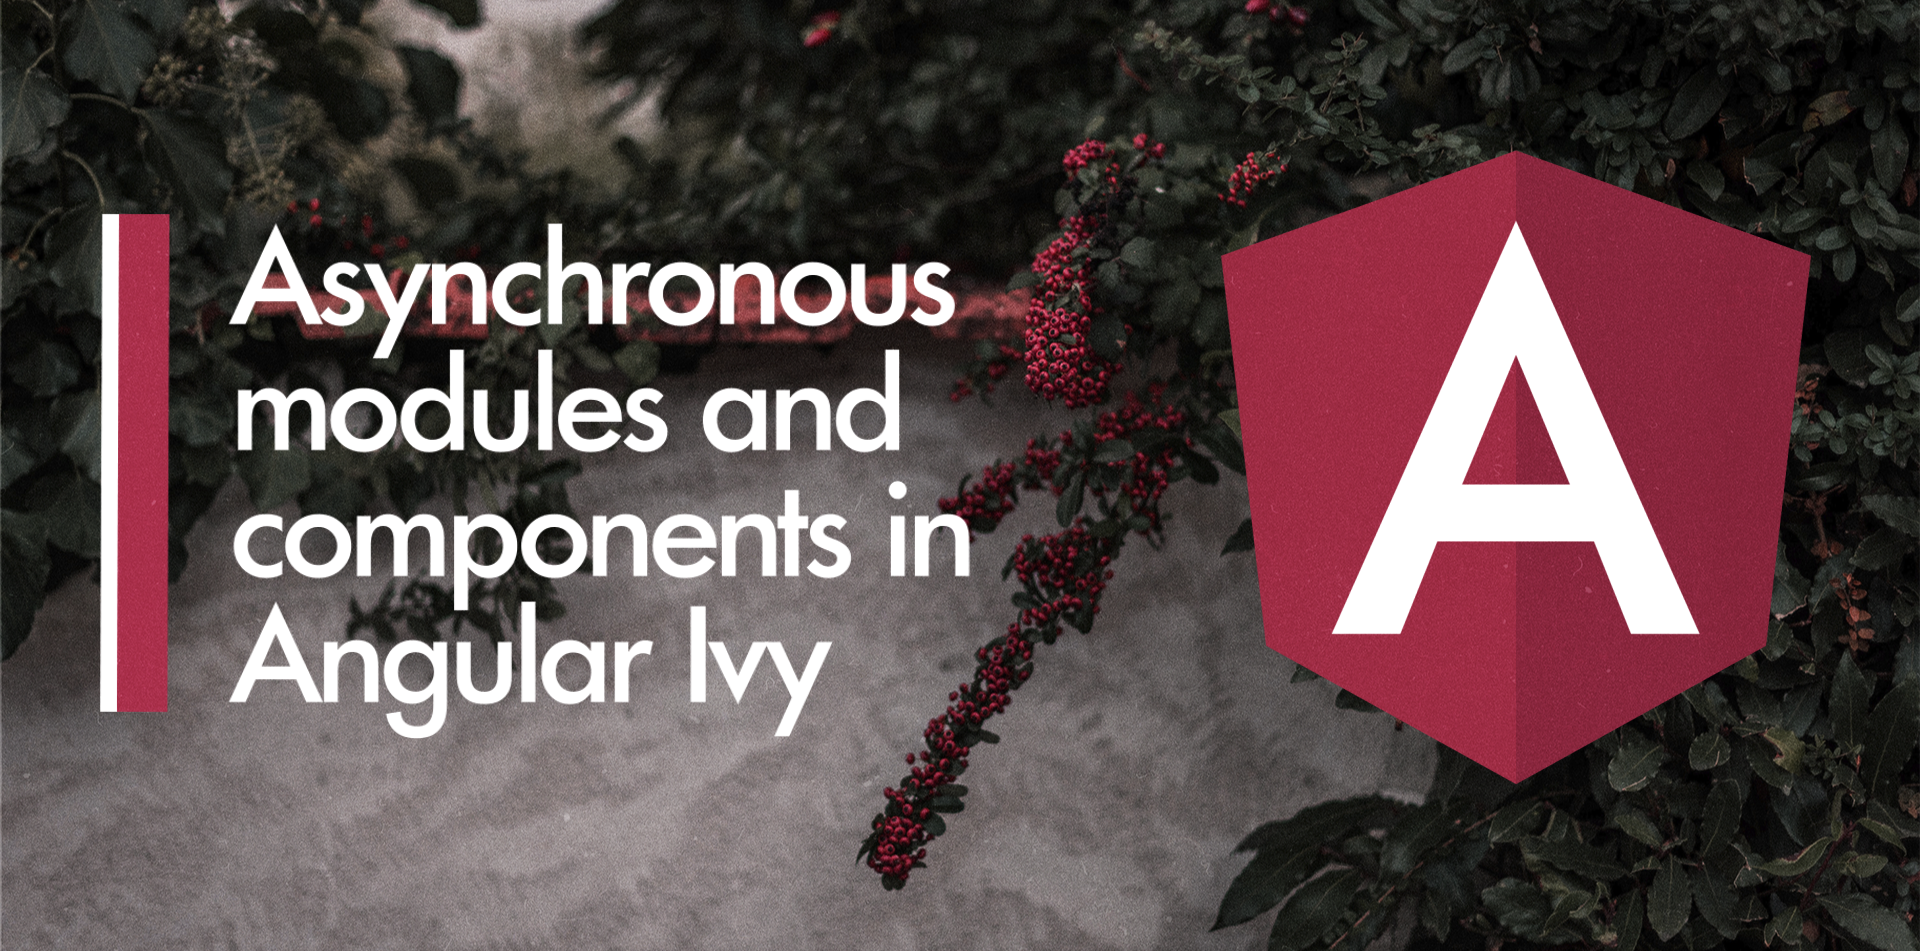 Asynchronous modules and components in Angular Ivy